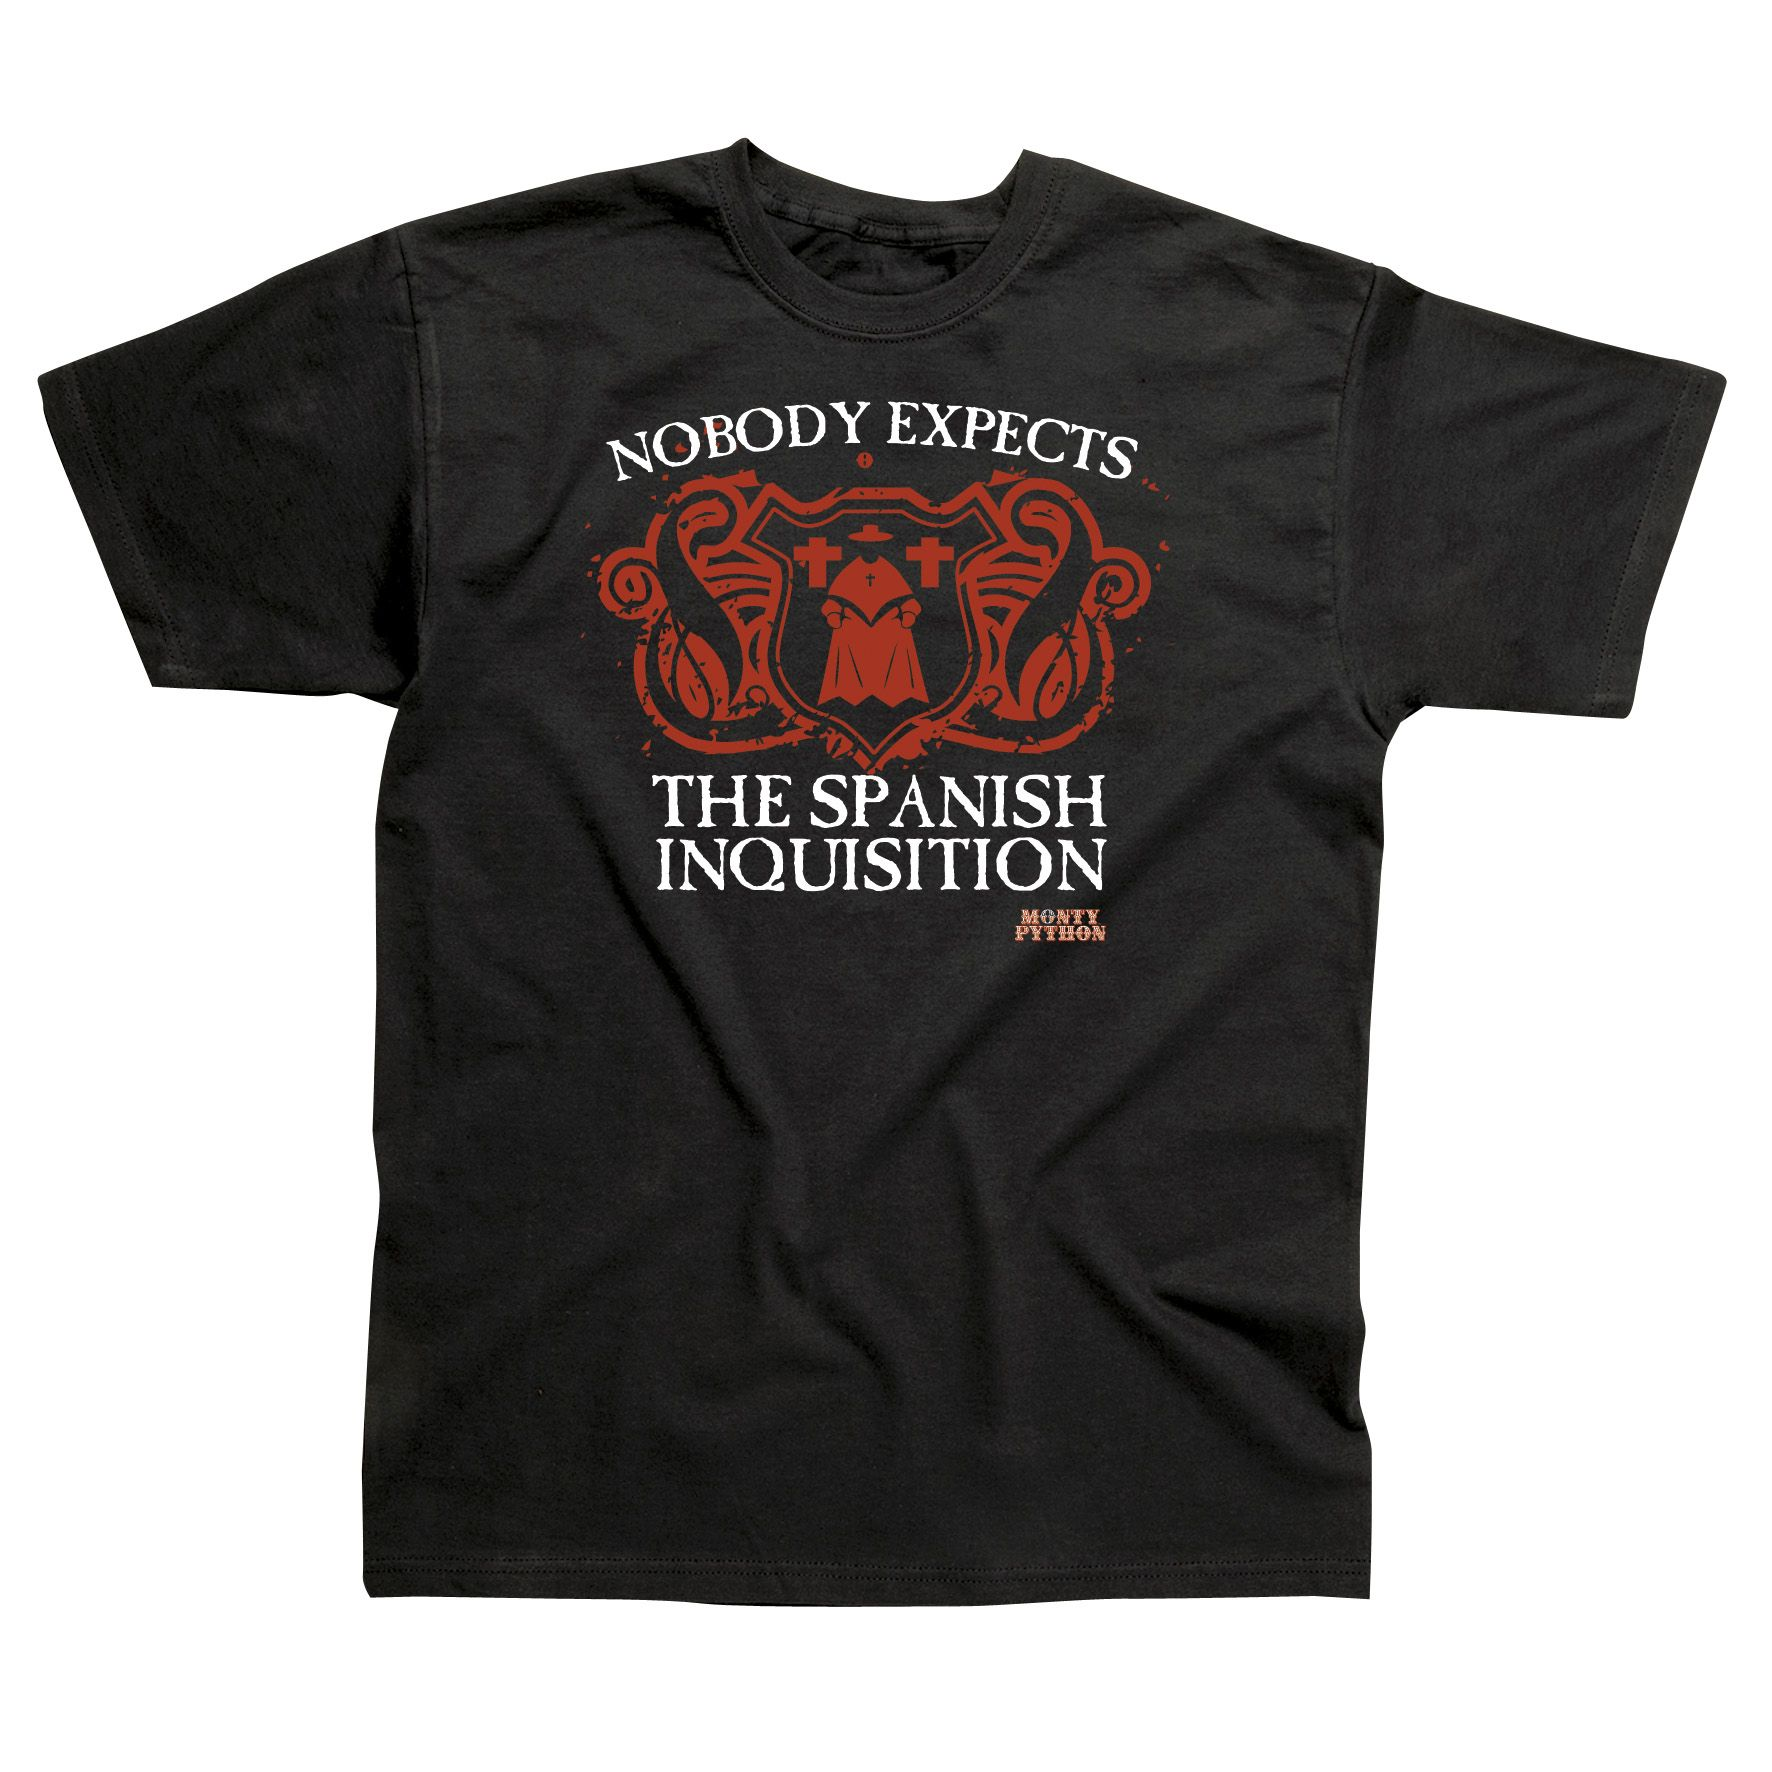 nobody expects the spanish inquisition shirt images nobody expects the spanish inquisition shirt